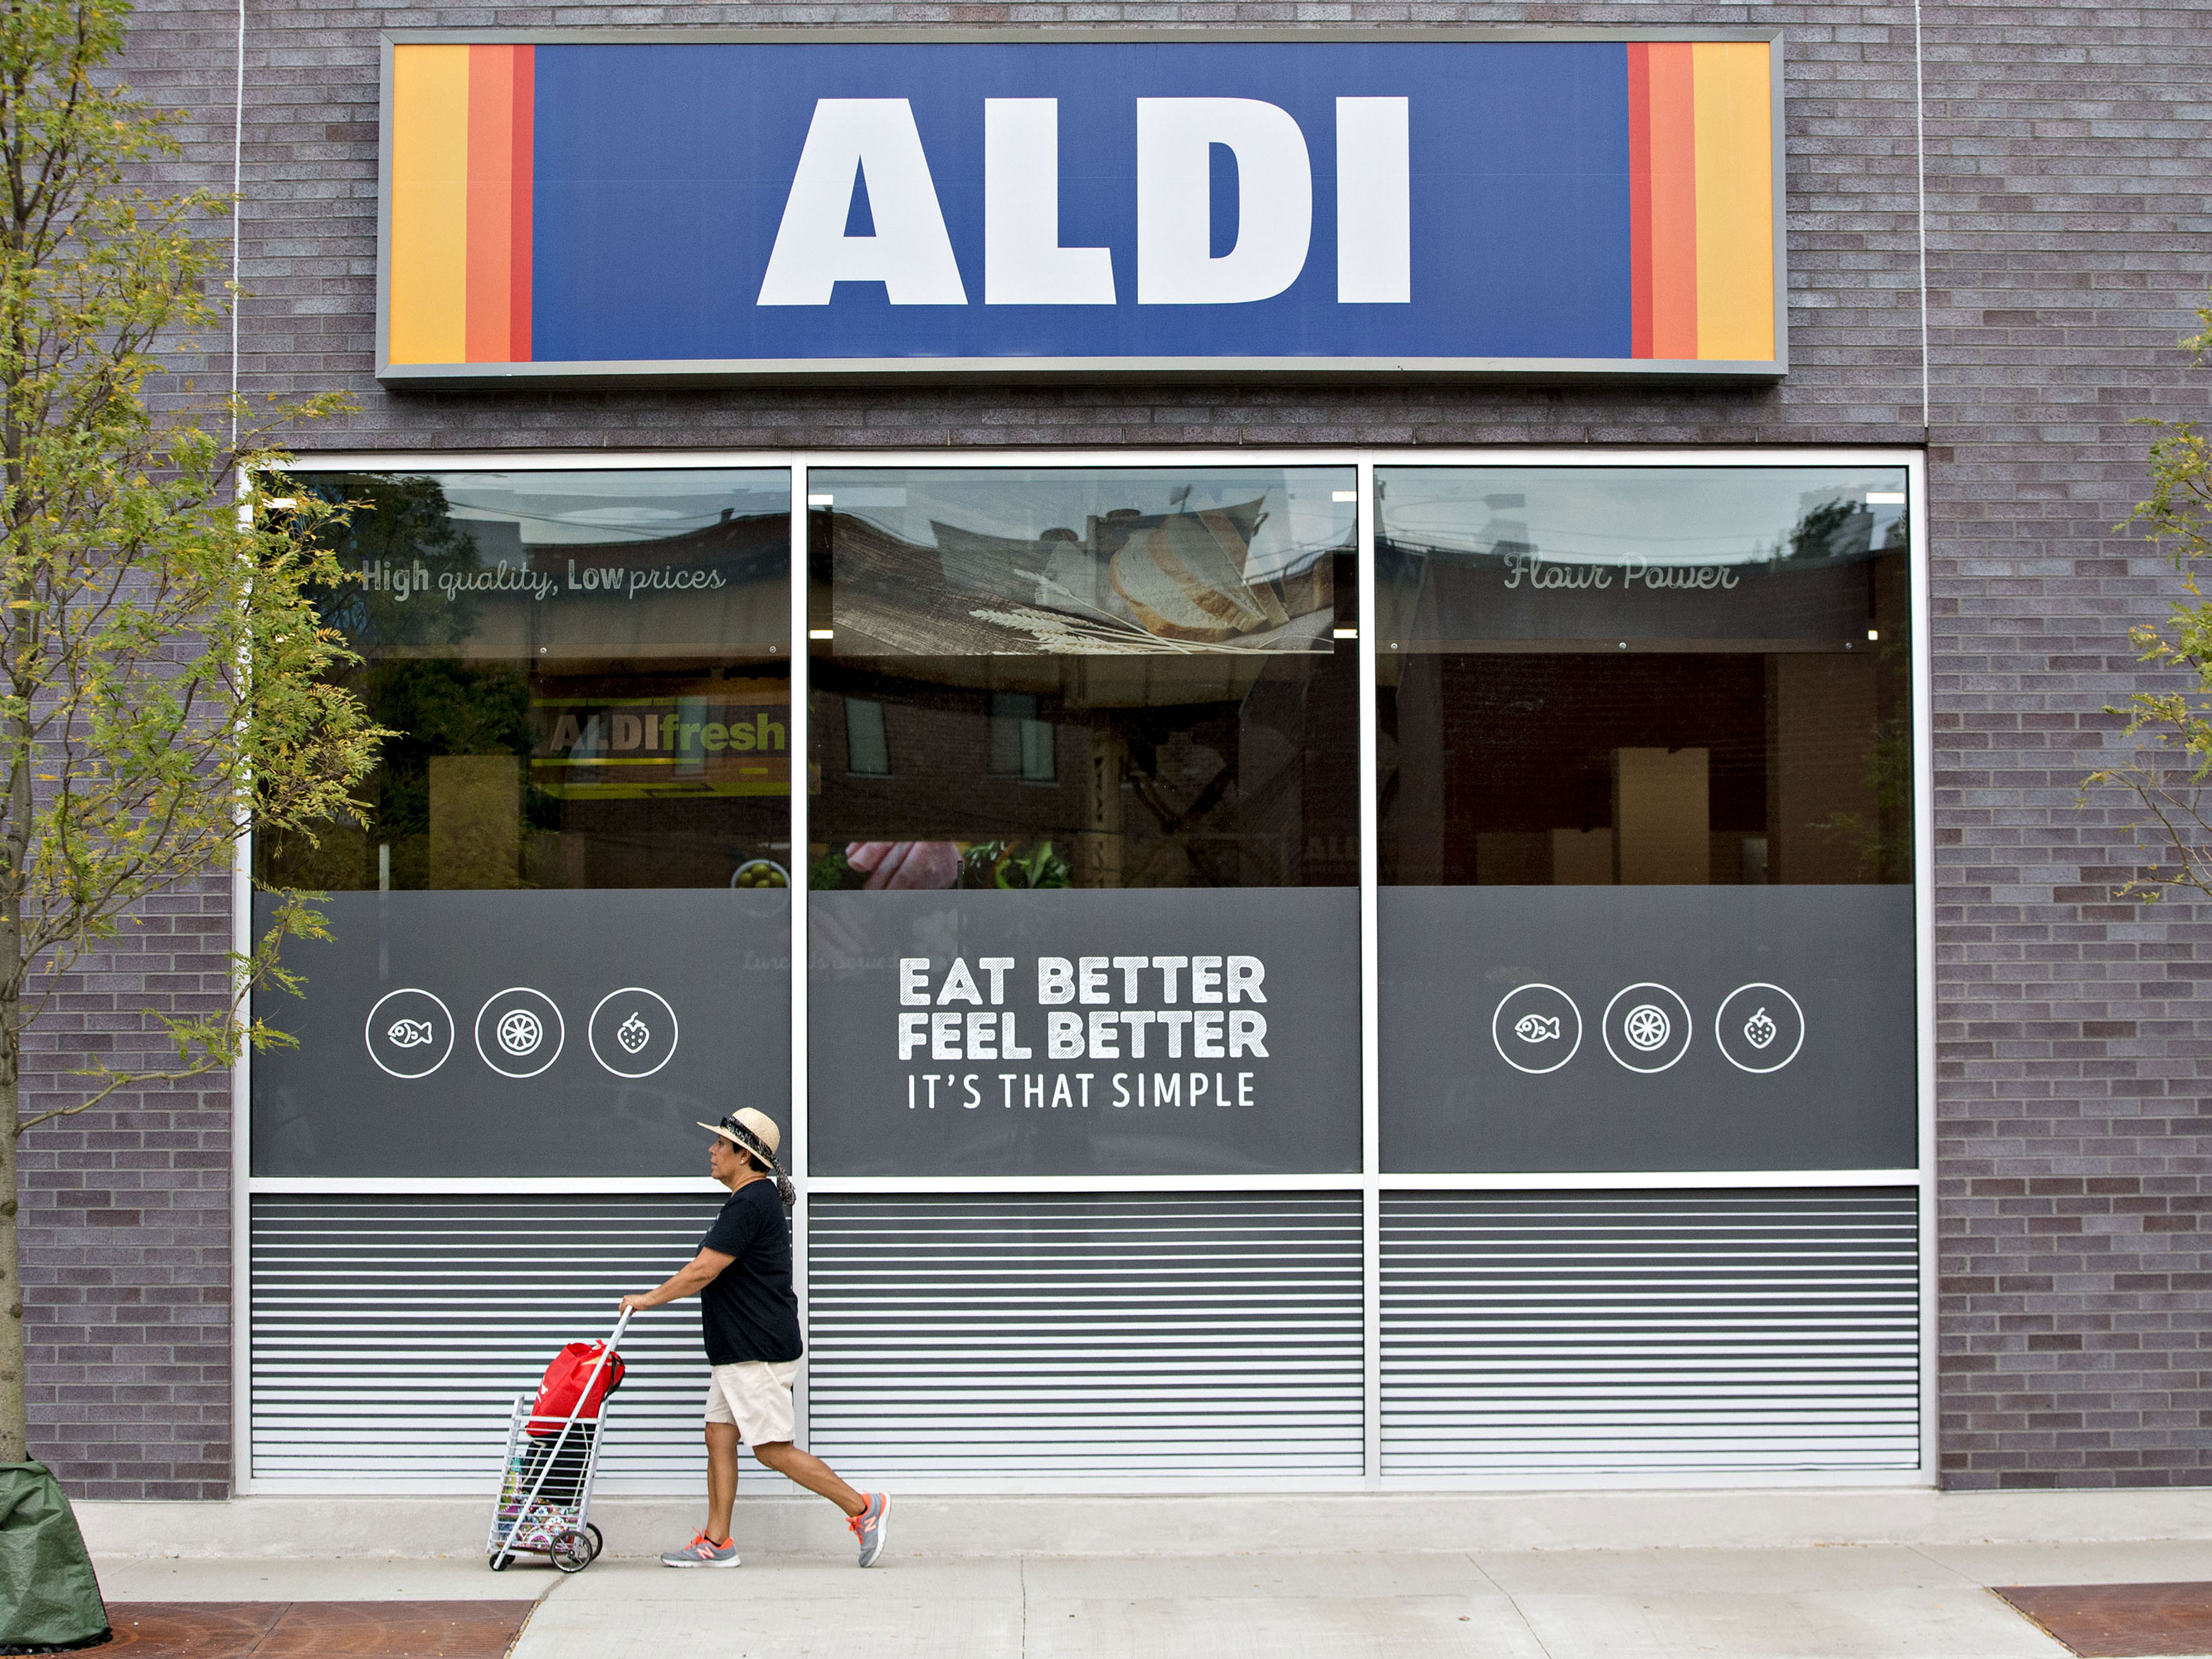 f9e9862f7e Aldi Adds Healthy Items Into New Stores and Expansions - Cooking Light